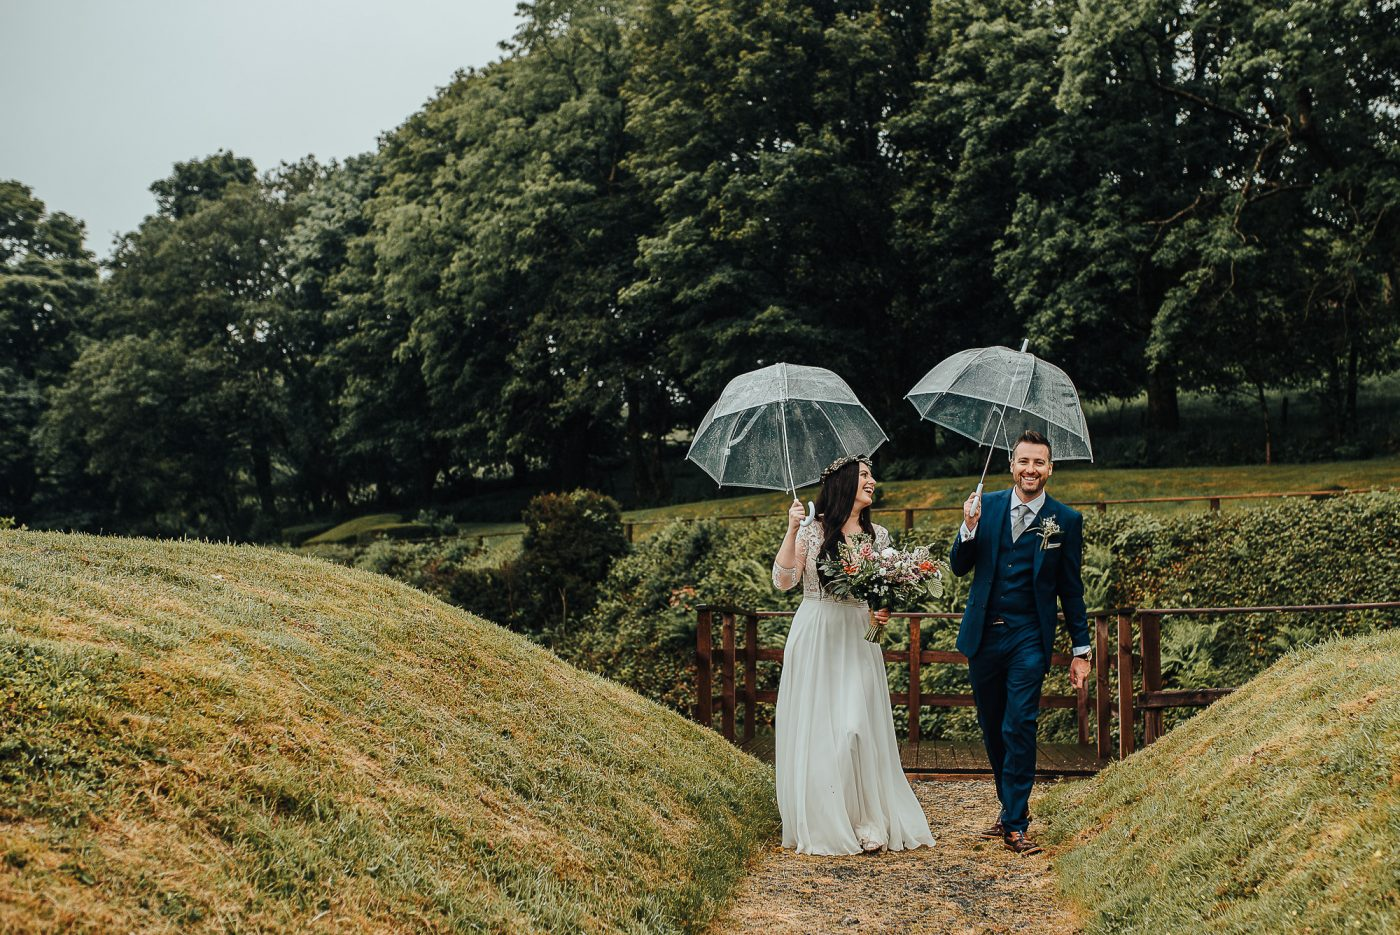 Wedding Photography by Our Beautiful Adventure Photography